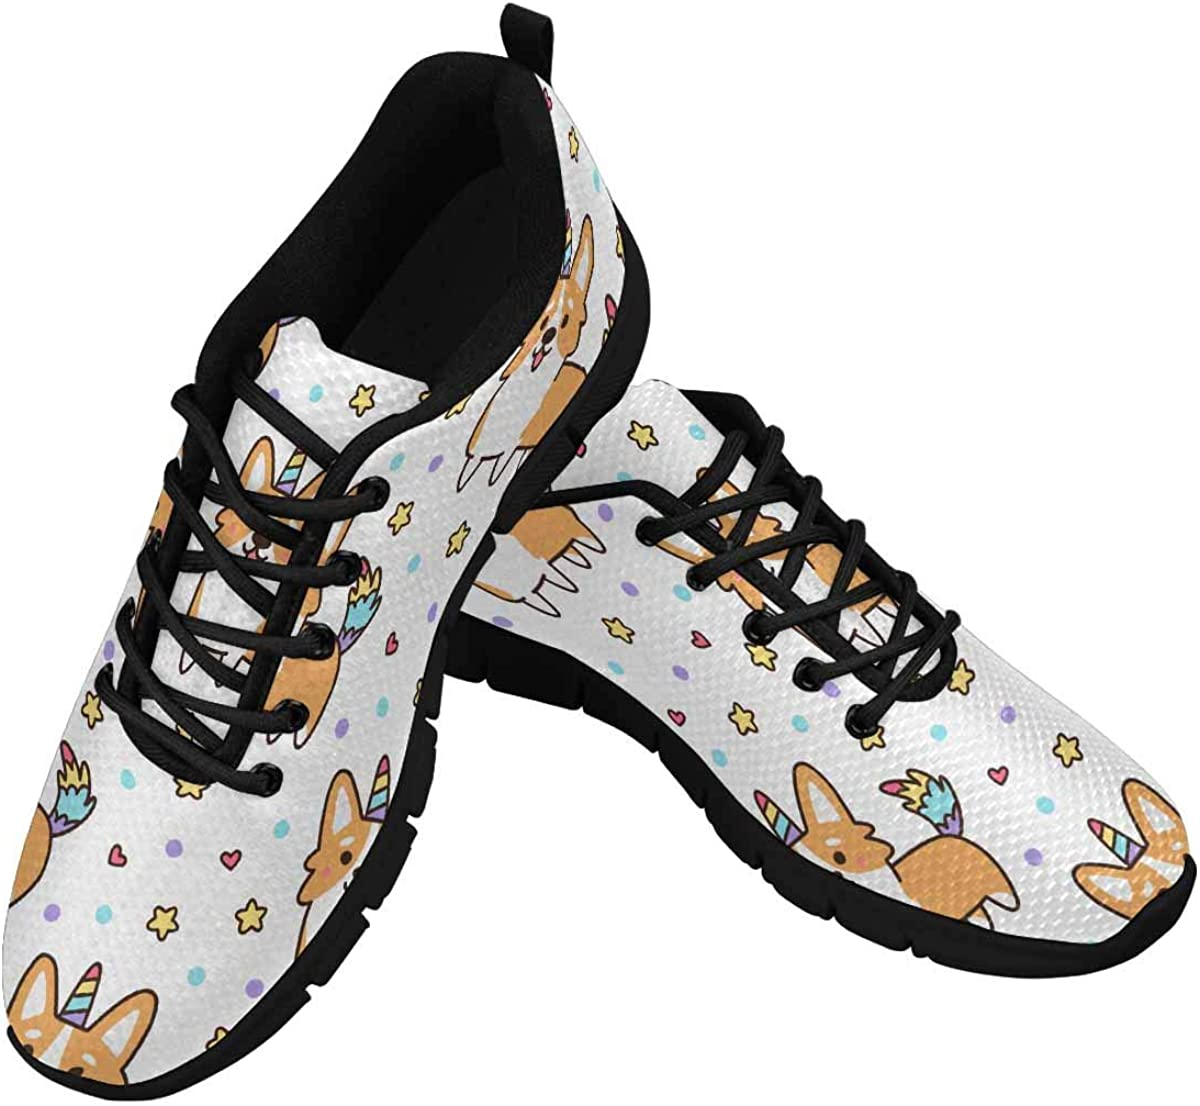 InterestPrint Welsh Corgi in a Unicorn Costume Women's Athletic Mesh Breathable Casual Sneakers Fashion Tennis Shoes